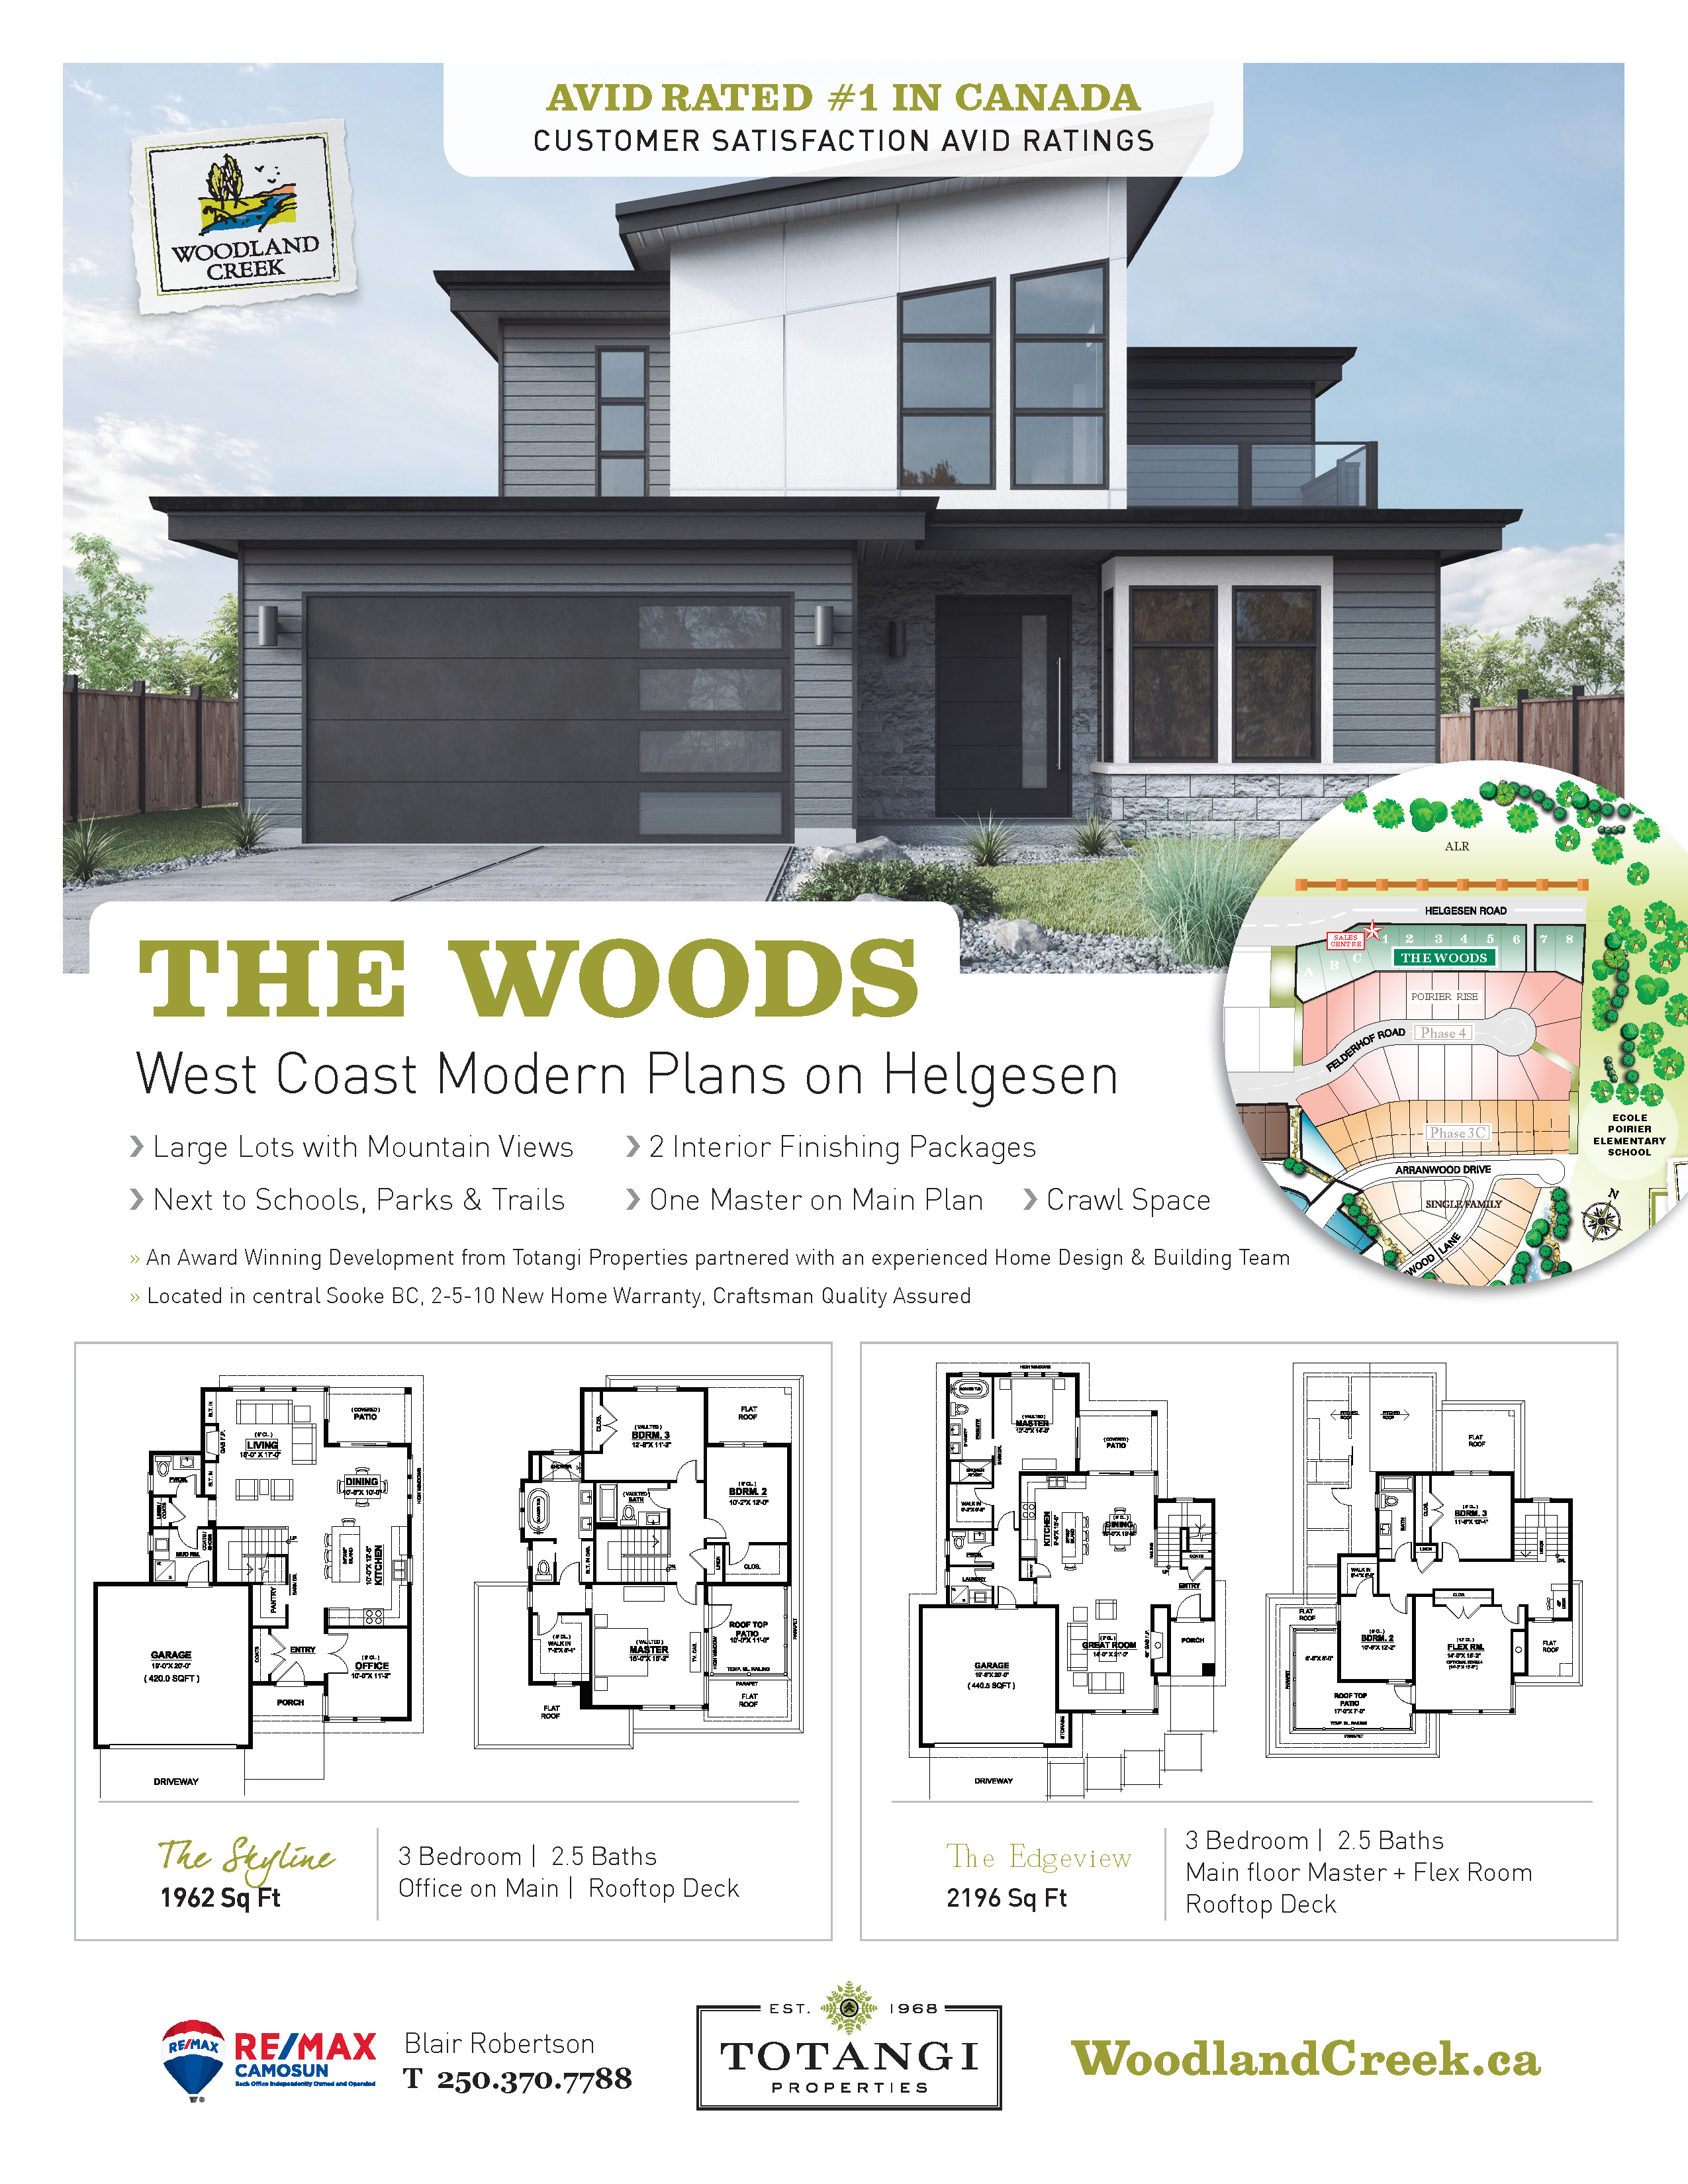 Woodland Creek Phase 5 - The Woods